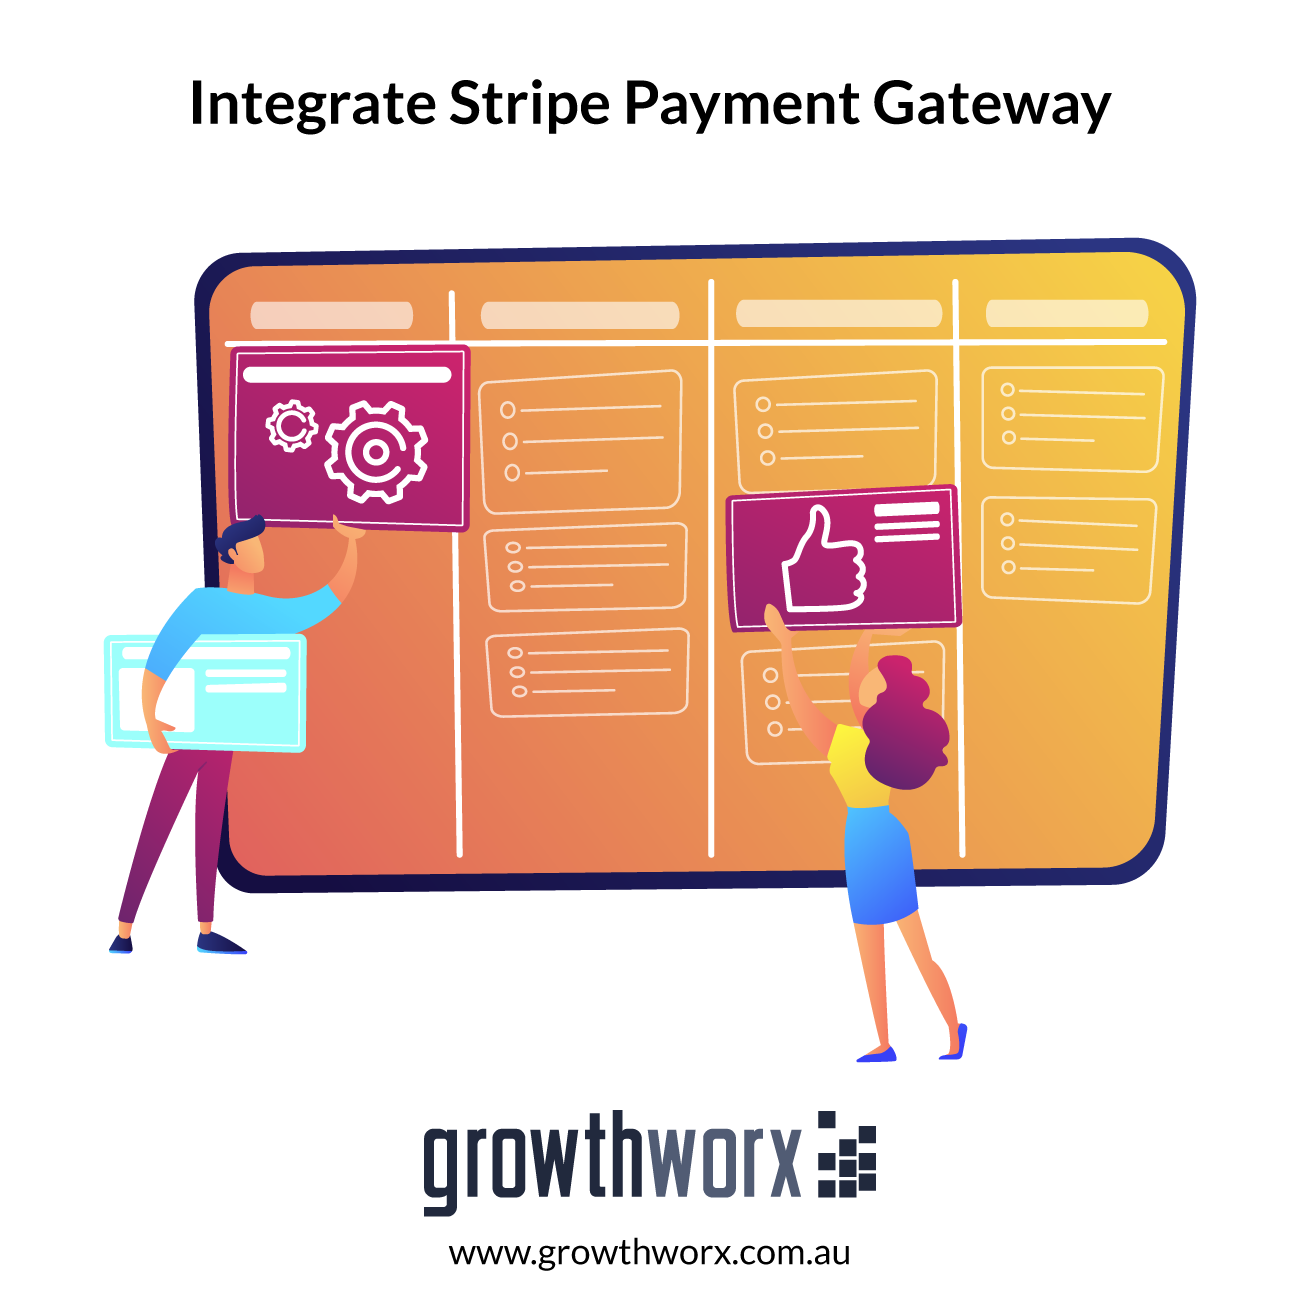 Integrate Stripe payment gateway to your website - simple charge option, customer account creation and subscription plan, recurring payments 1